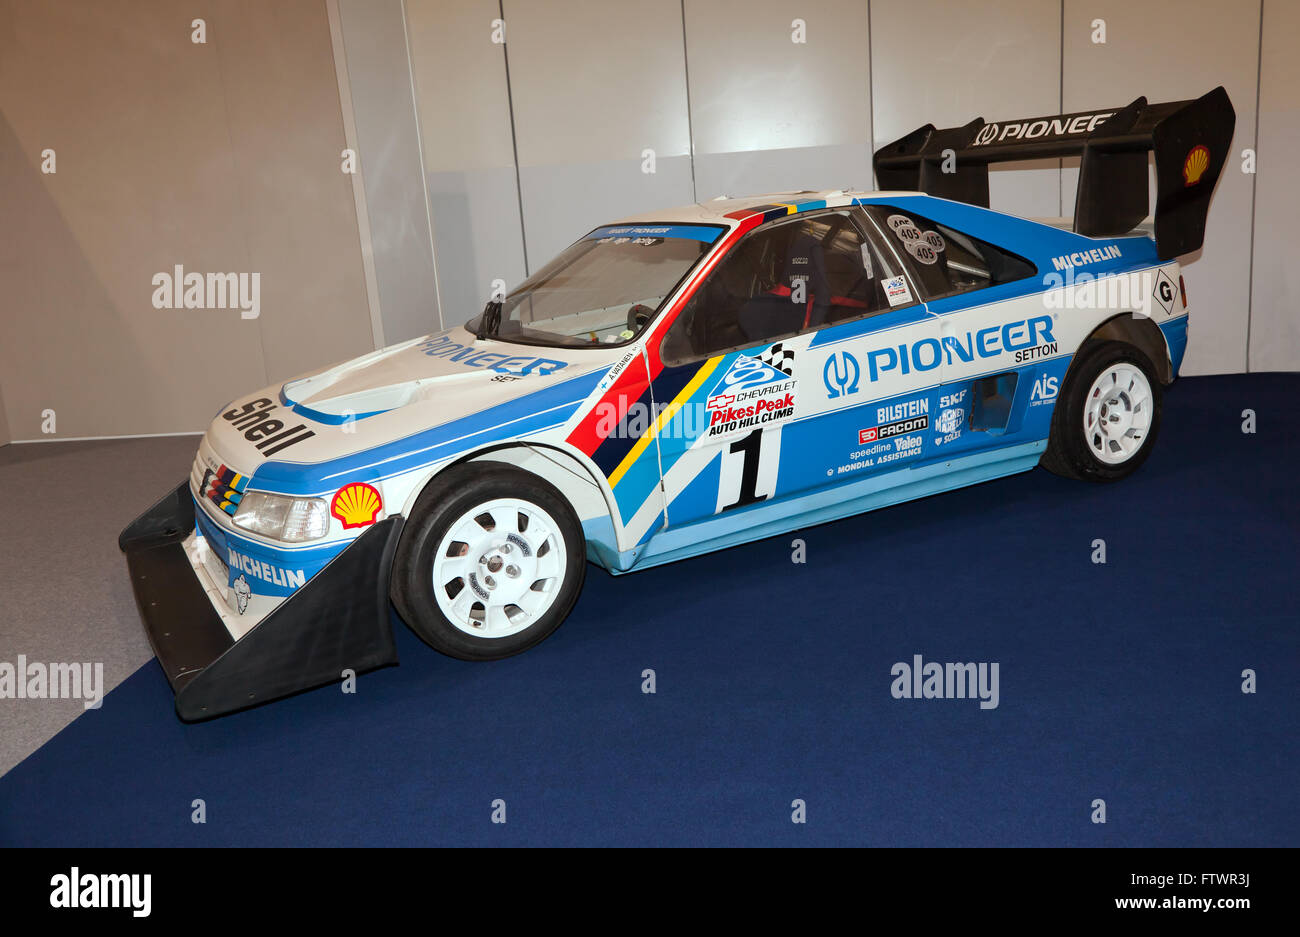 the peugeot 405 t16 which won pikes peak in 1988 driven by stock photo 101370518 alamy. Black Bedroom Furniture Sets. Home Design Ideas